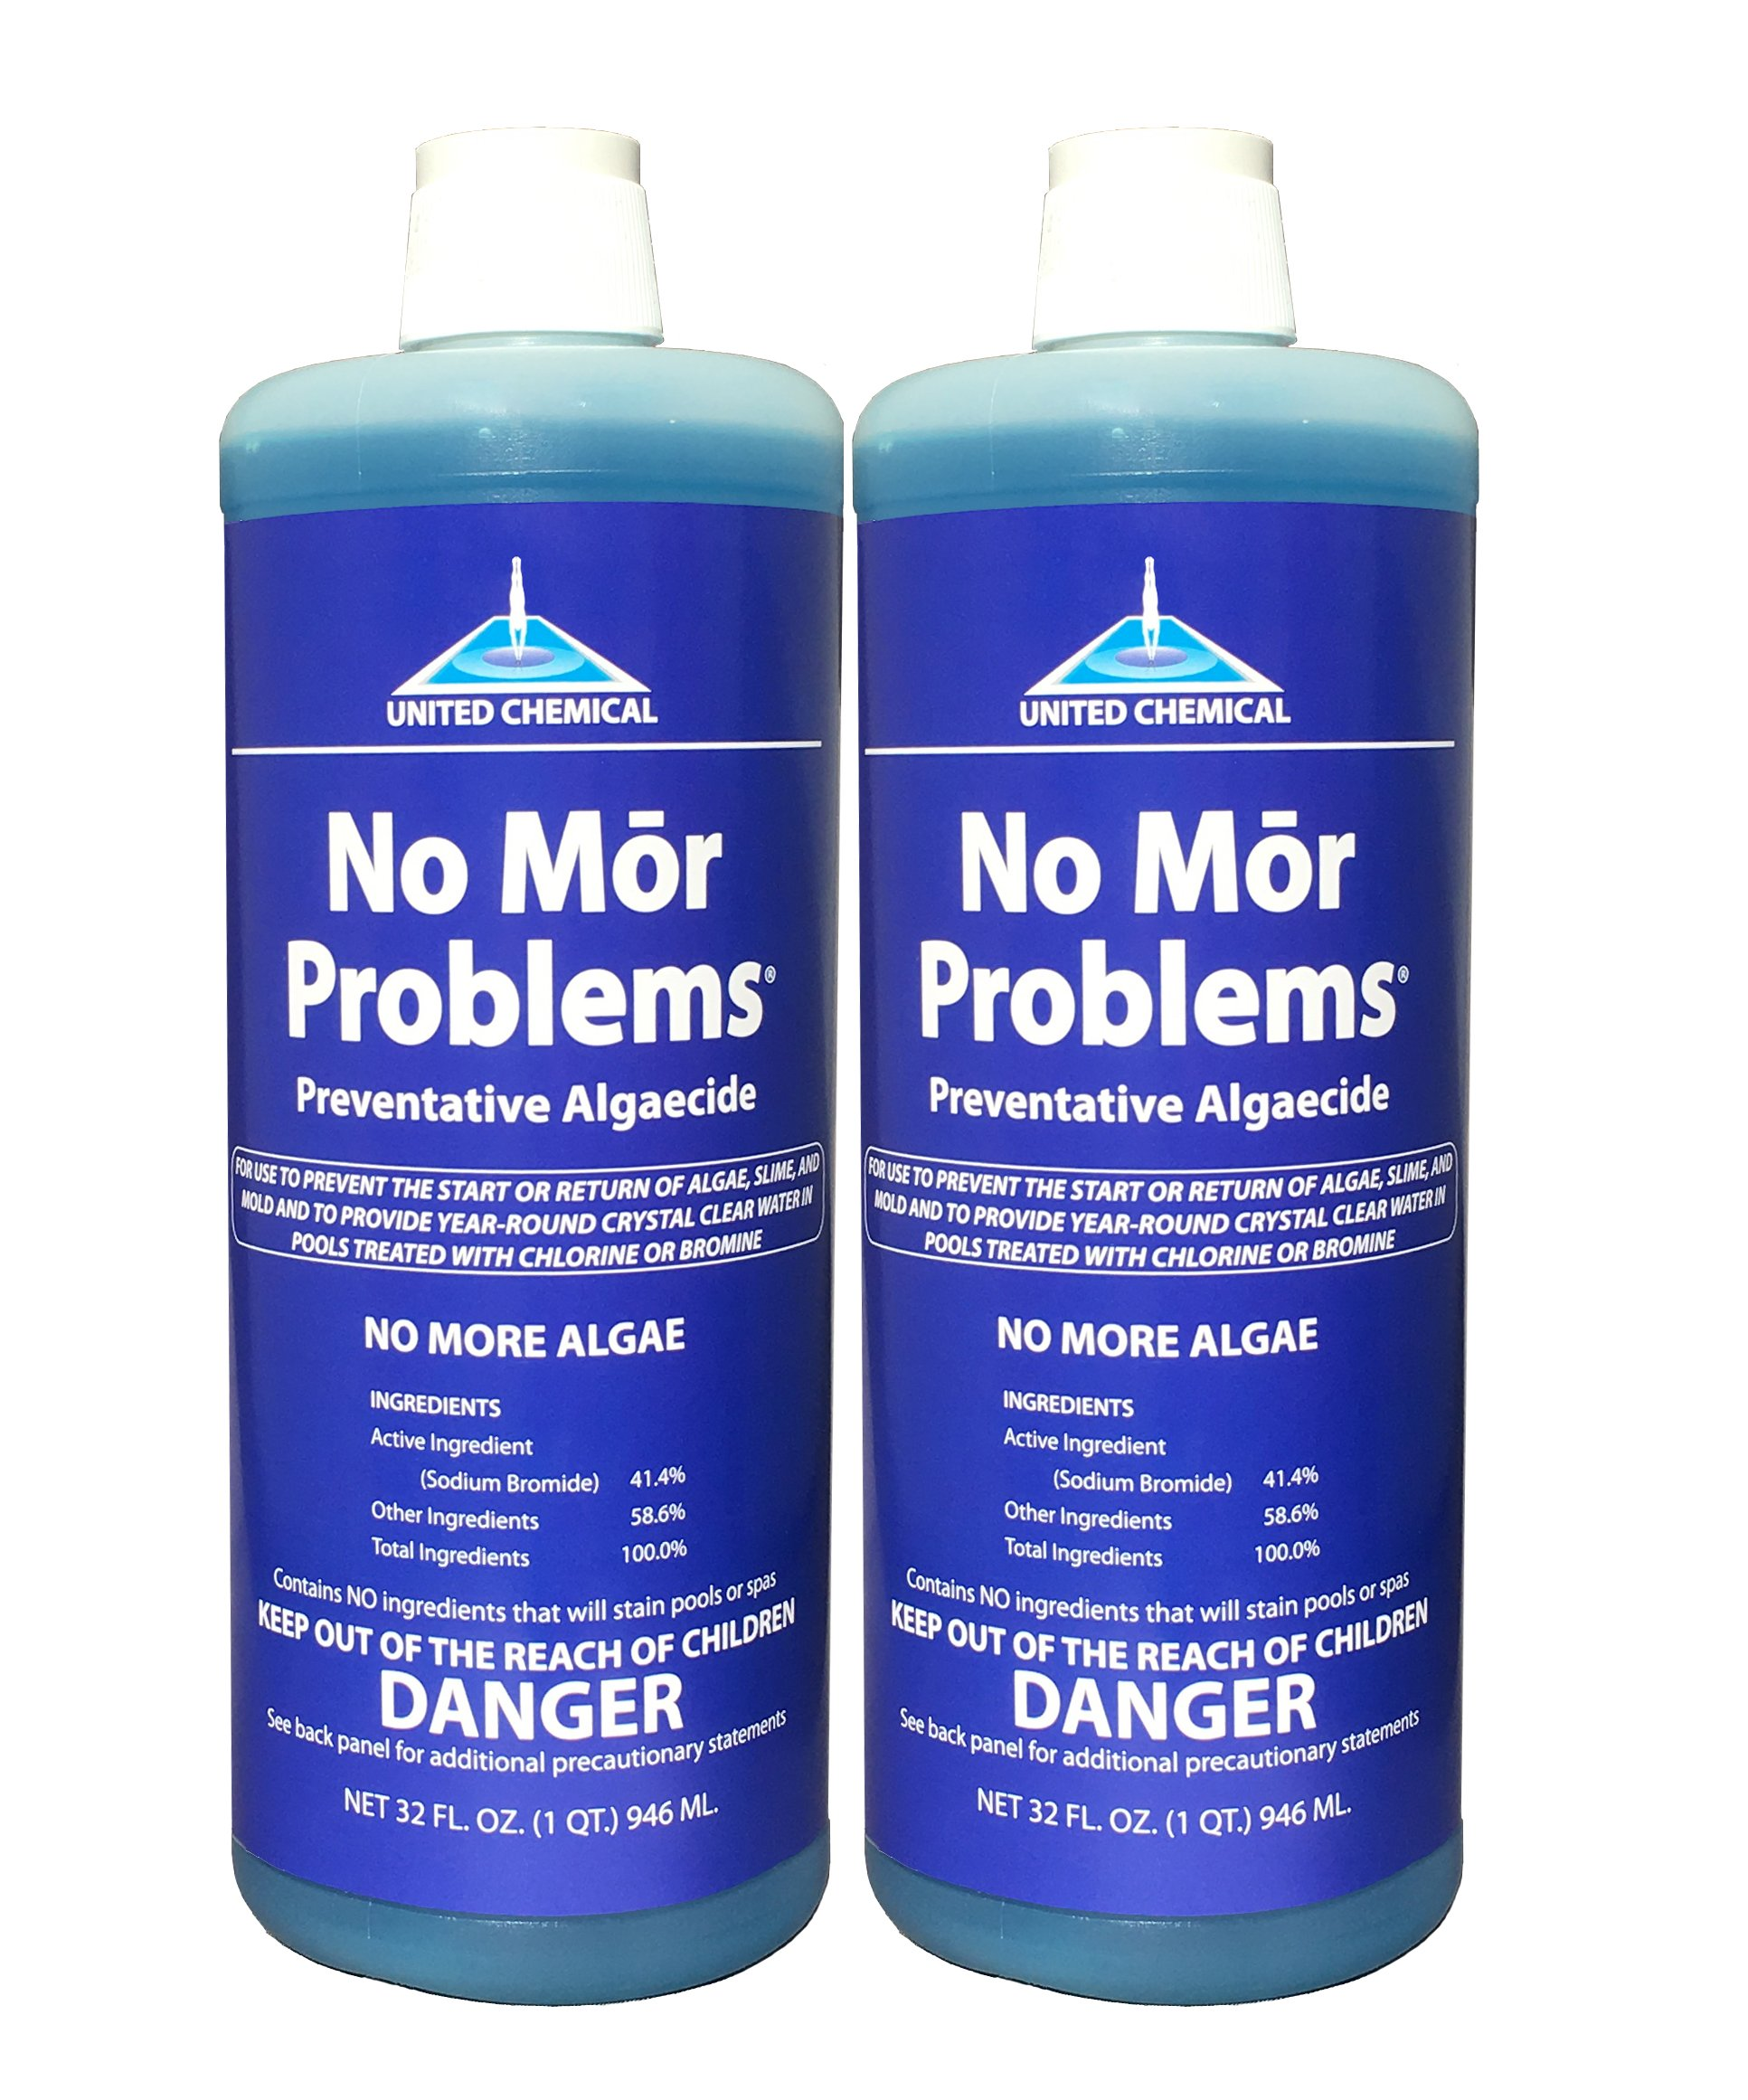 2 PACK - United Chemical No Mor Problems 1qt NMP-C12 by No Mor Problems